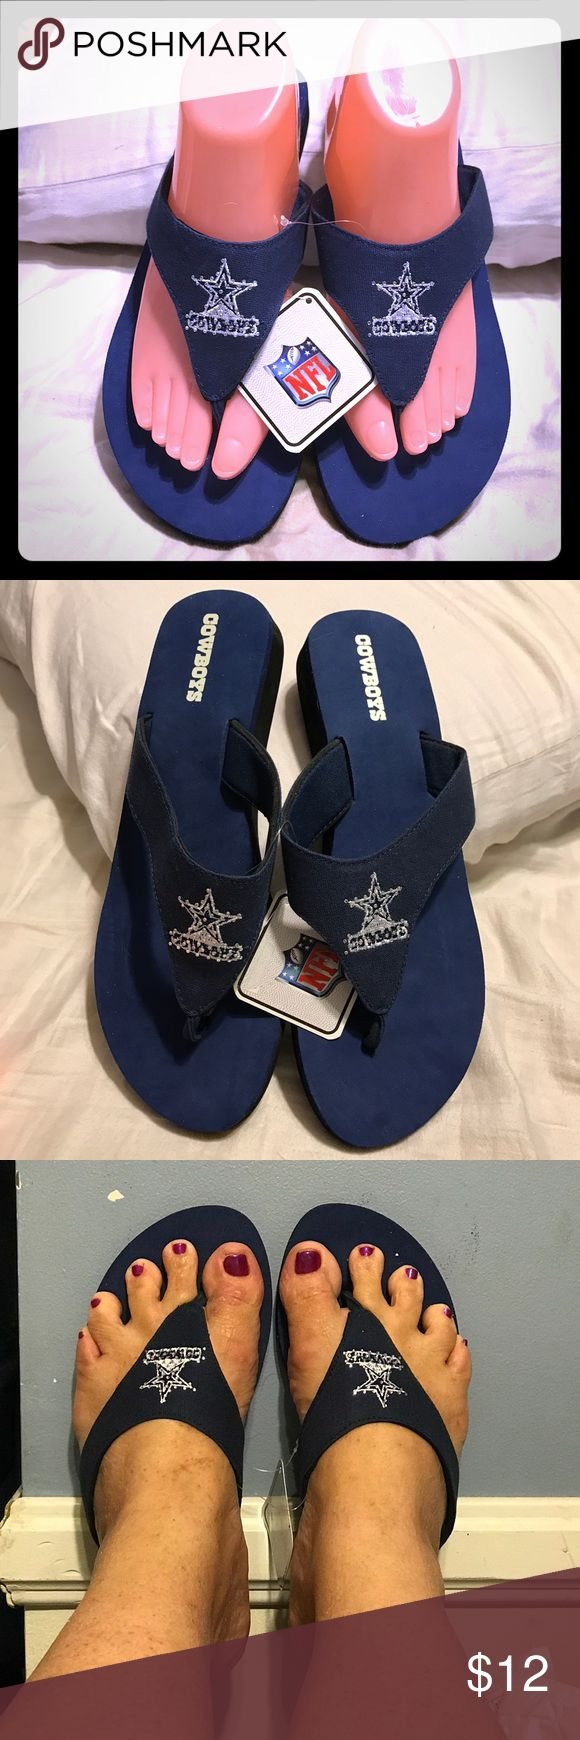 Brand New Dallas Cowboy Sandals Brand new Dallas Cowboy's NFL Sandals. They are size medium which fits a women's size 9/10 shoe. They have a navy blue footbed and it has the Cowboy's on it. The strap is white and has Cowboys embroidered on the center of the strap and it is embellished in diamond rhinestones. They are so adorable and are perfect for that Dallas Cowboy fan. The retail price is $26.00. NFL Shoes Sandals